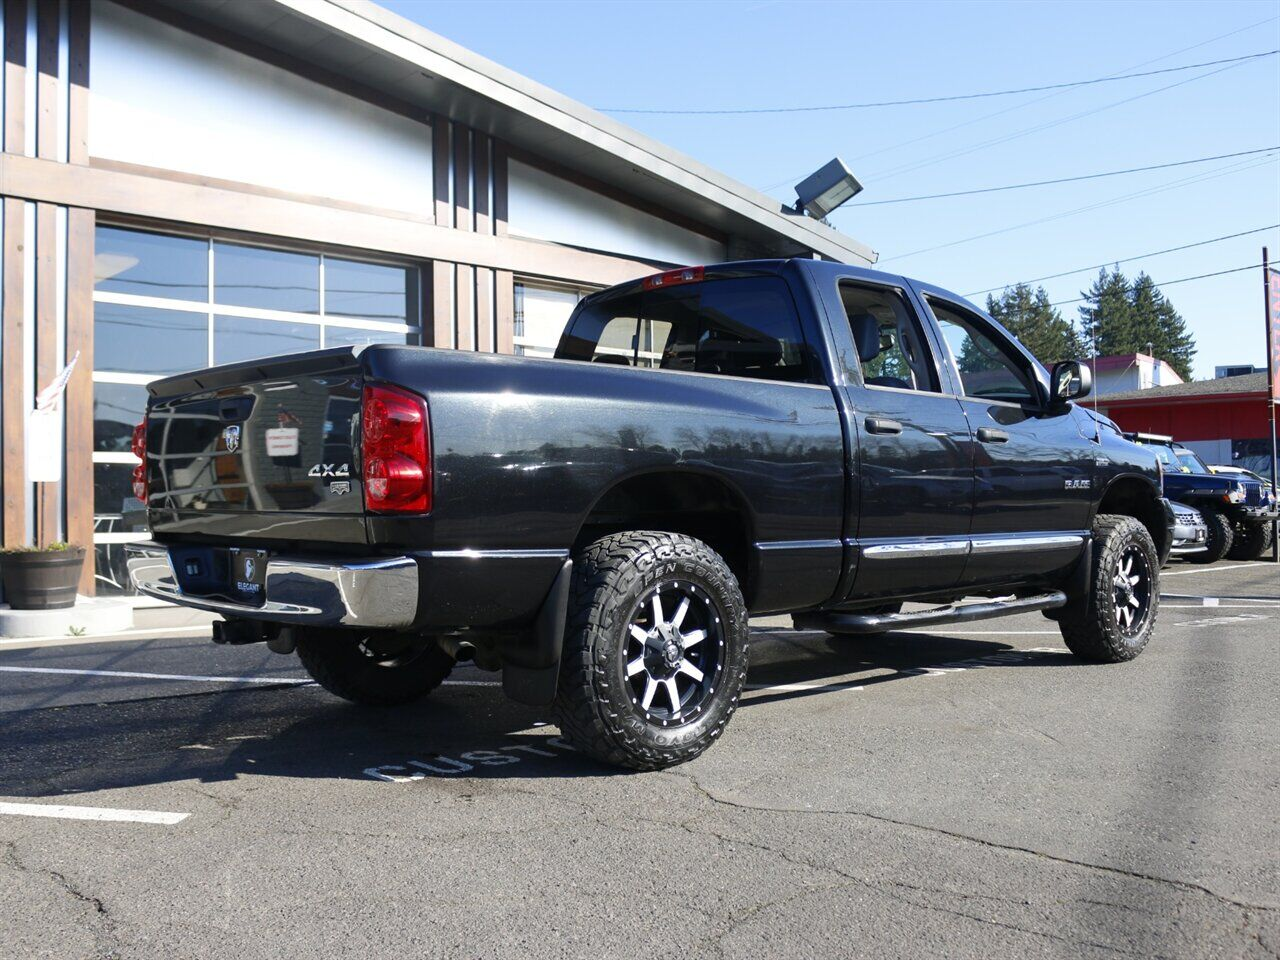 2008 Dodge Ram 1500 Laramie / LEATHER / 4X4 / LOW MILES Beaverton OR